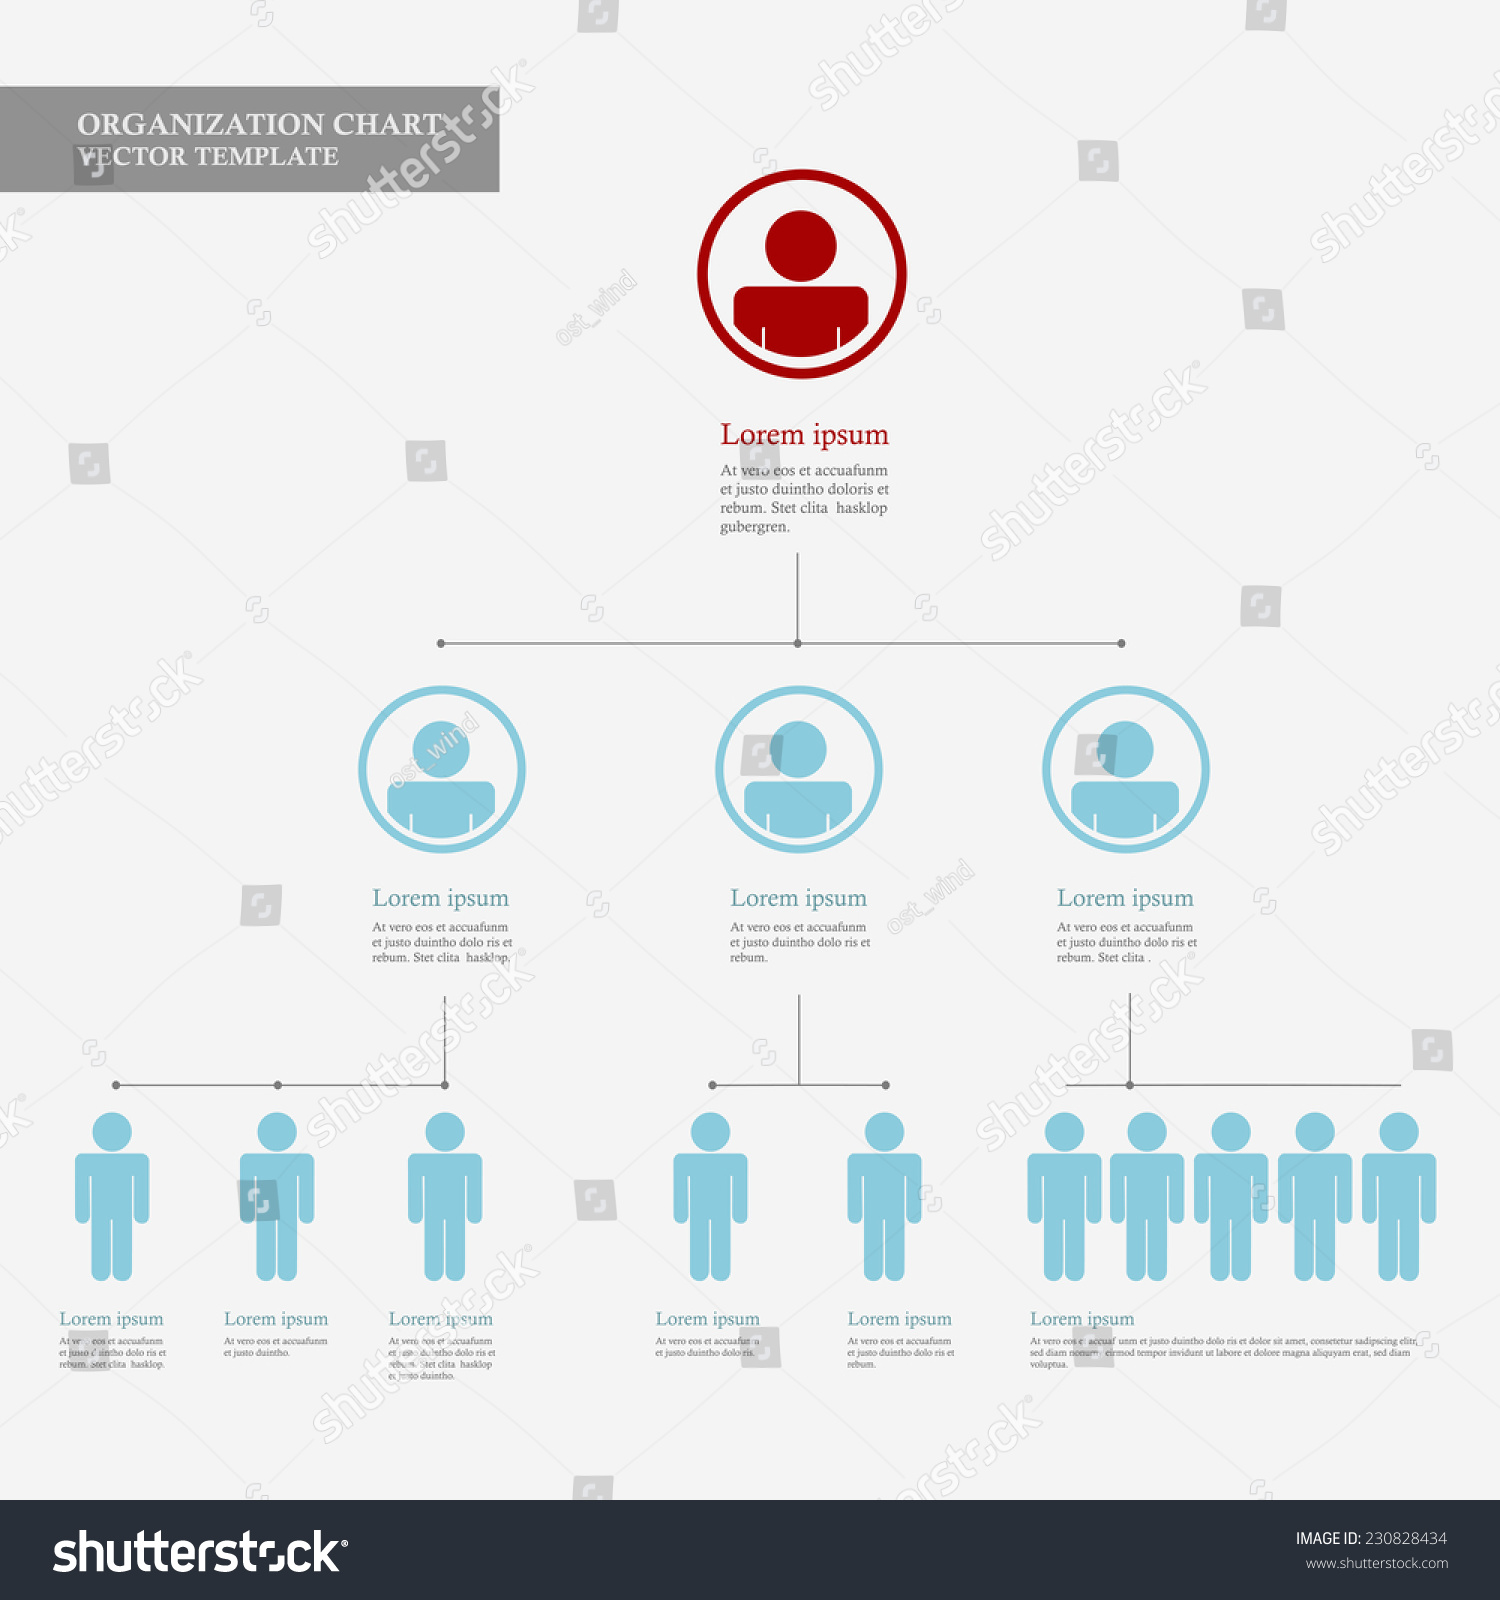 Corporate Organization Chart Template Business People Stock Vector ...